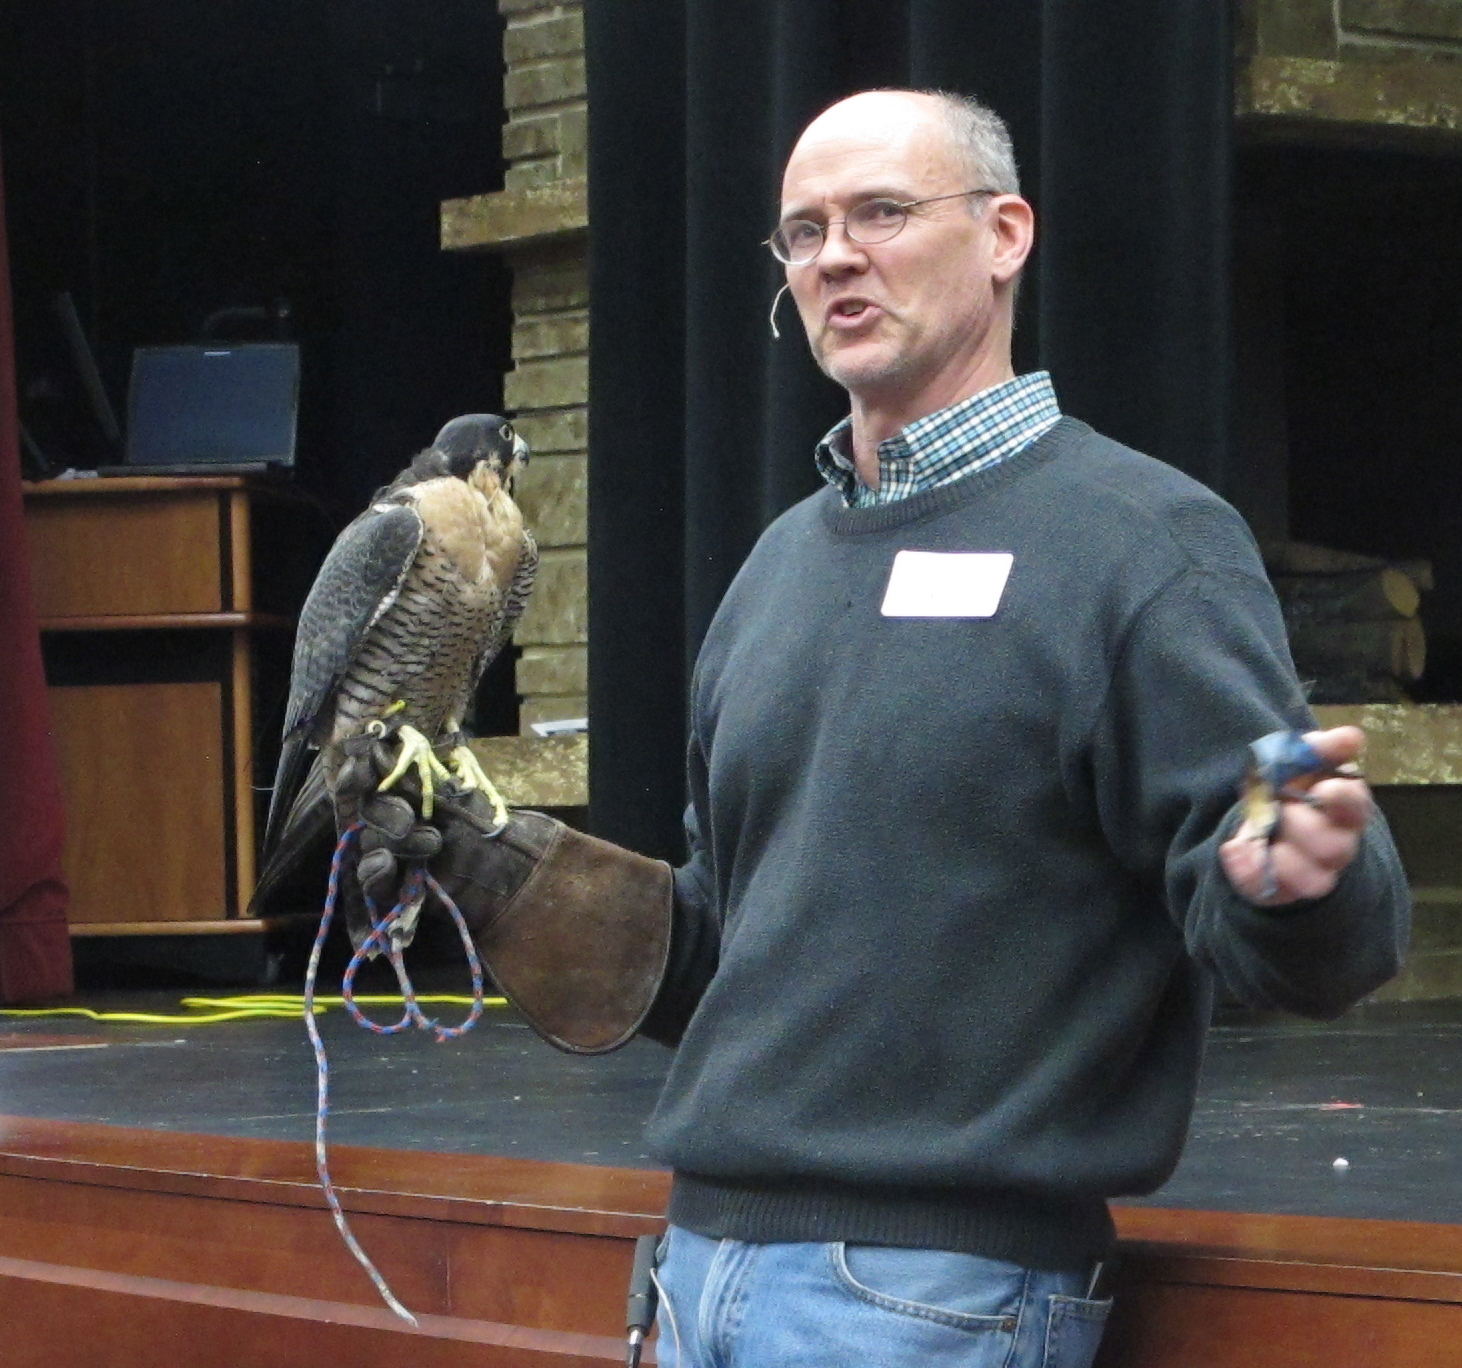 Falconer Andrew Weaver holds his peregrine falcon, Pickle, during a Science Night demonstration at the Cambridge auditorium on Feb. 27. PHOTO COURTESY OF ANGIE ANDERSON